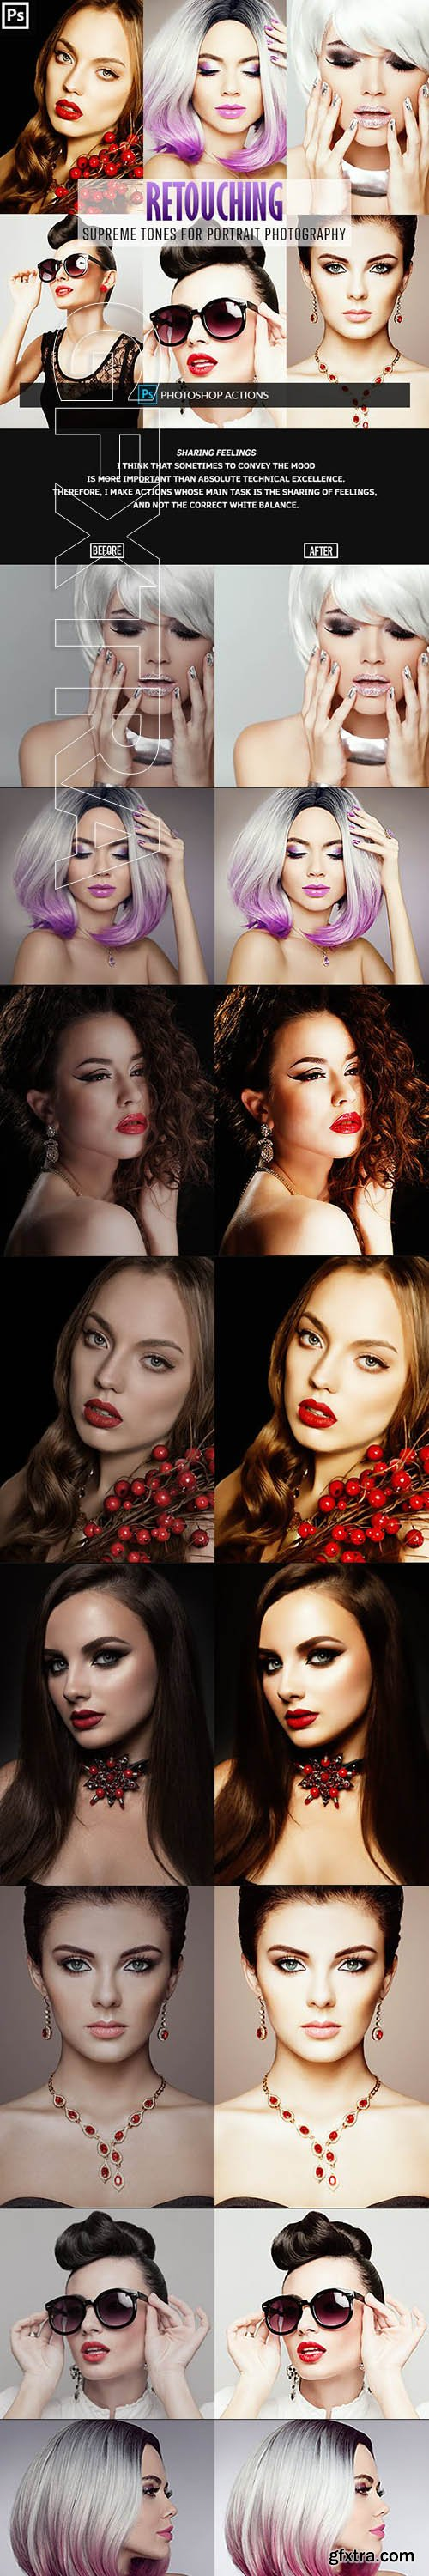 GraphicRiver - Retouching One Click Photoshop Action 23152811